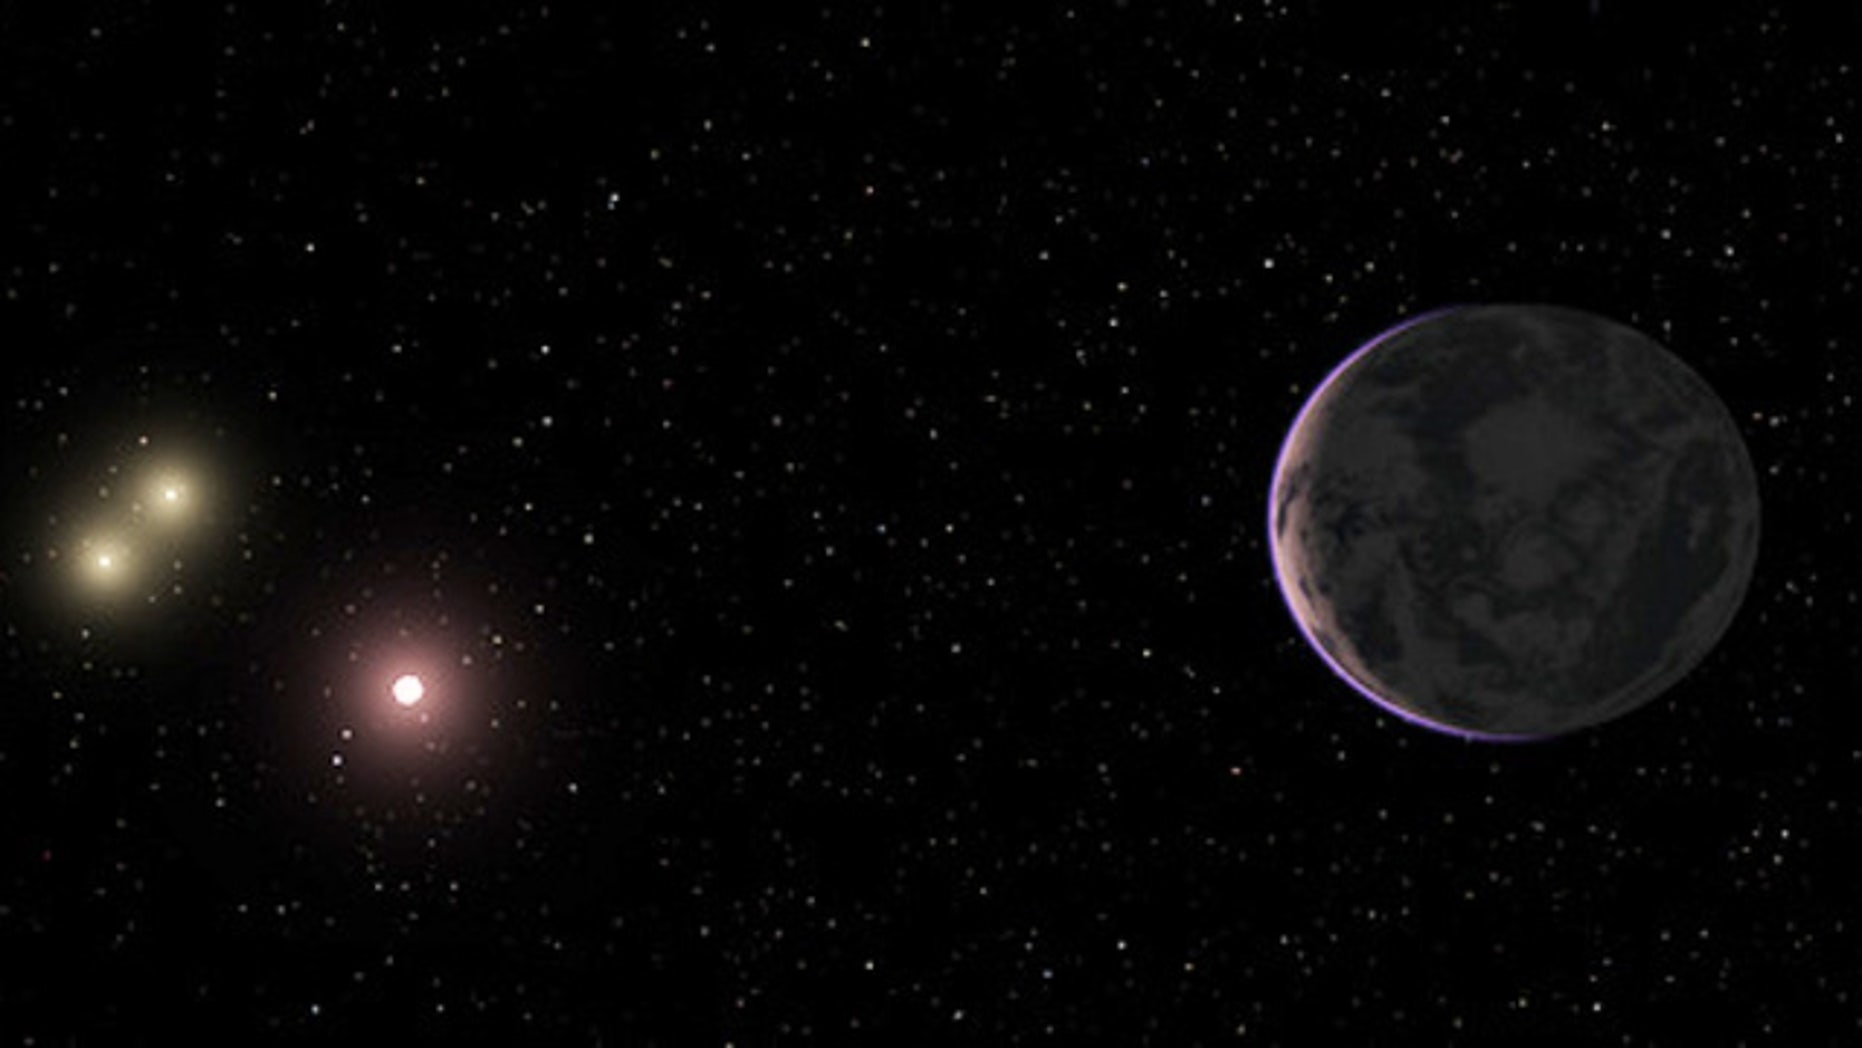 An artist's conception of the alien planet GJ 667Cc, which is located in the habitable zone of its parent star.